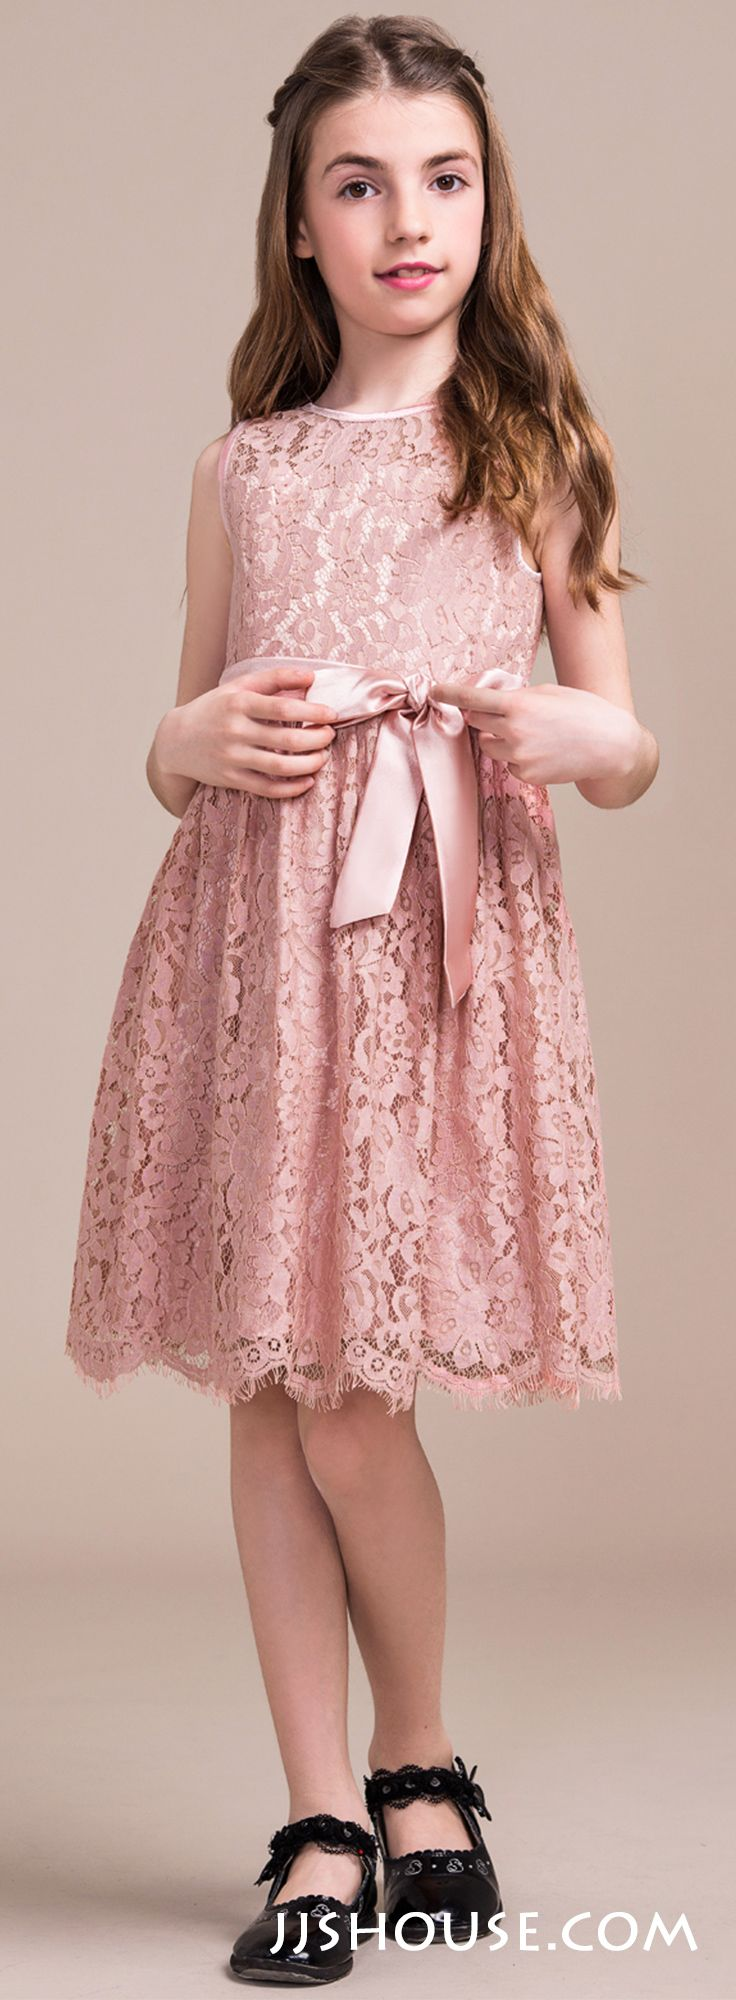 117 best junior bridesmaid dresses images on pinterest girls a perfect dress for your junior bridesmaid jjshouse ombrellifo Choice Image